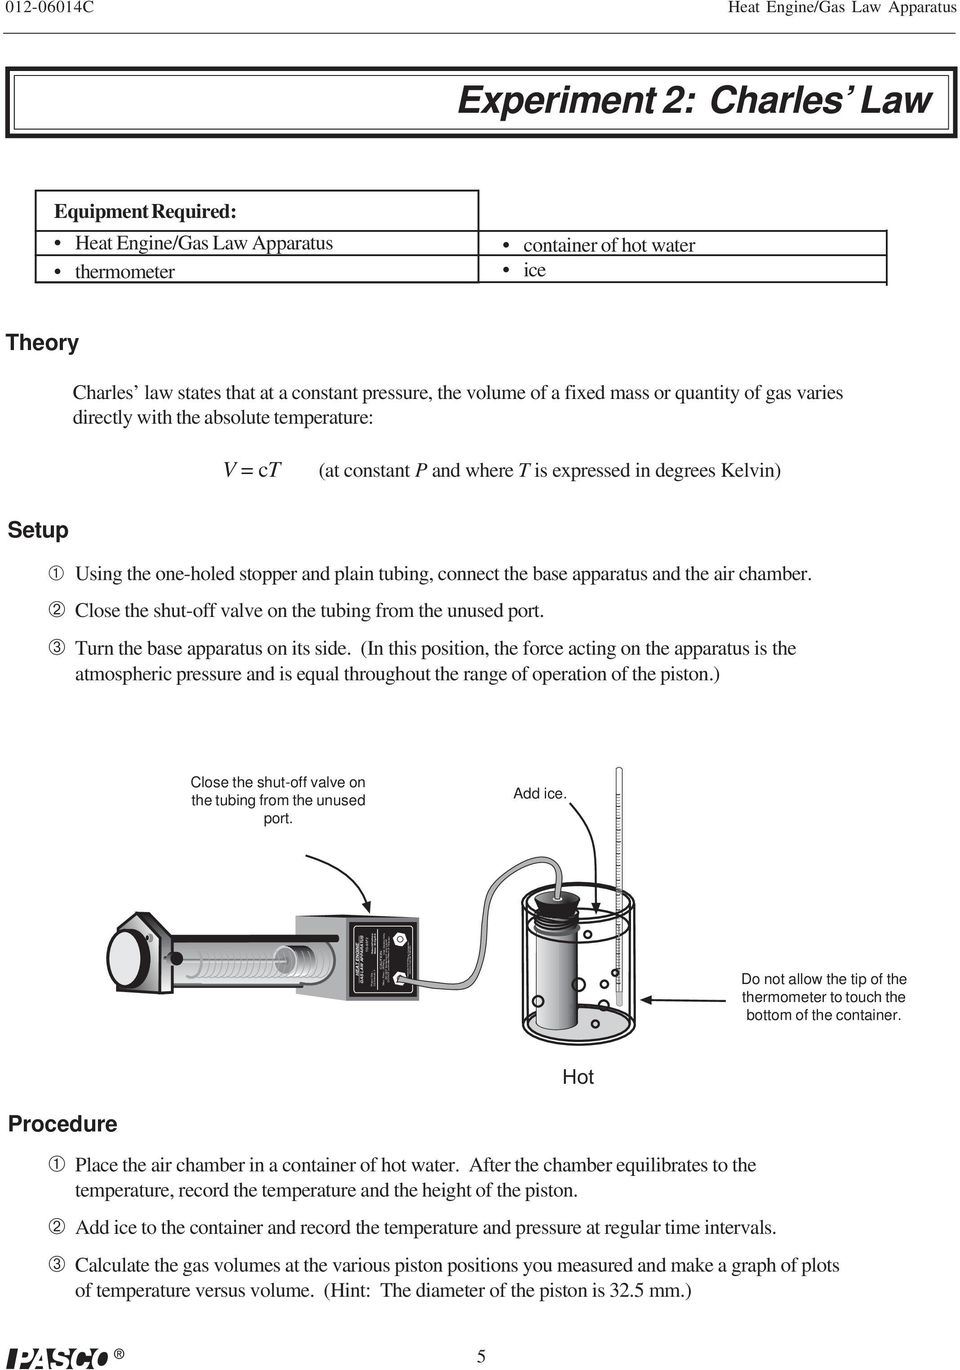 Instruction Manual And Experiment Guide For The Pasco Scientific Fixed Piston Engine Diagram One Holed Stopper Plain Tubing Connect Base Apparatus Air Chamber